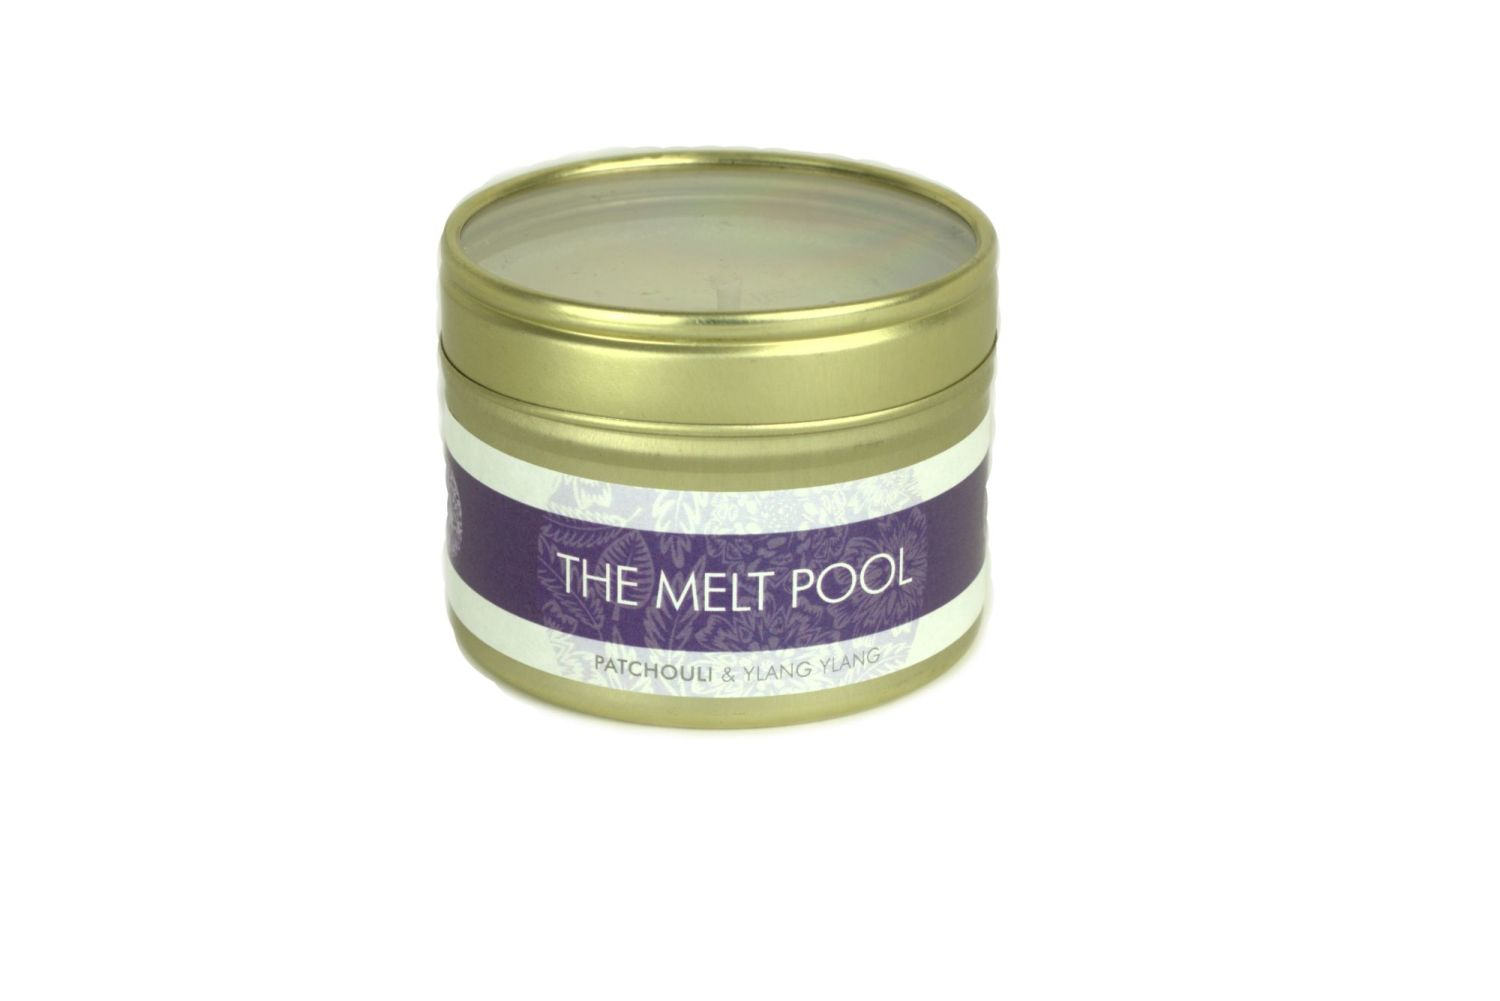 Small Travel Tin Candle Made in Scotland by The Melt Pool